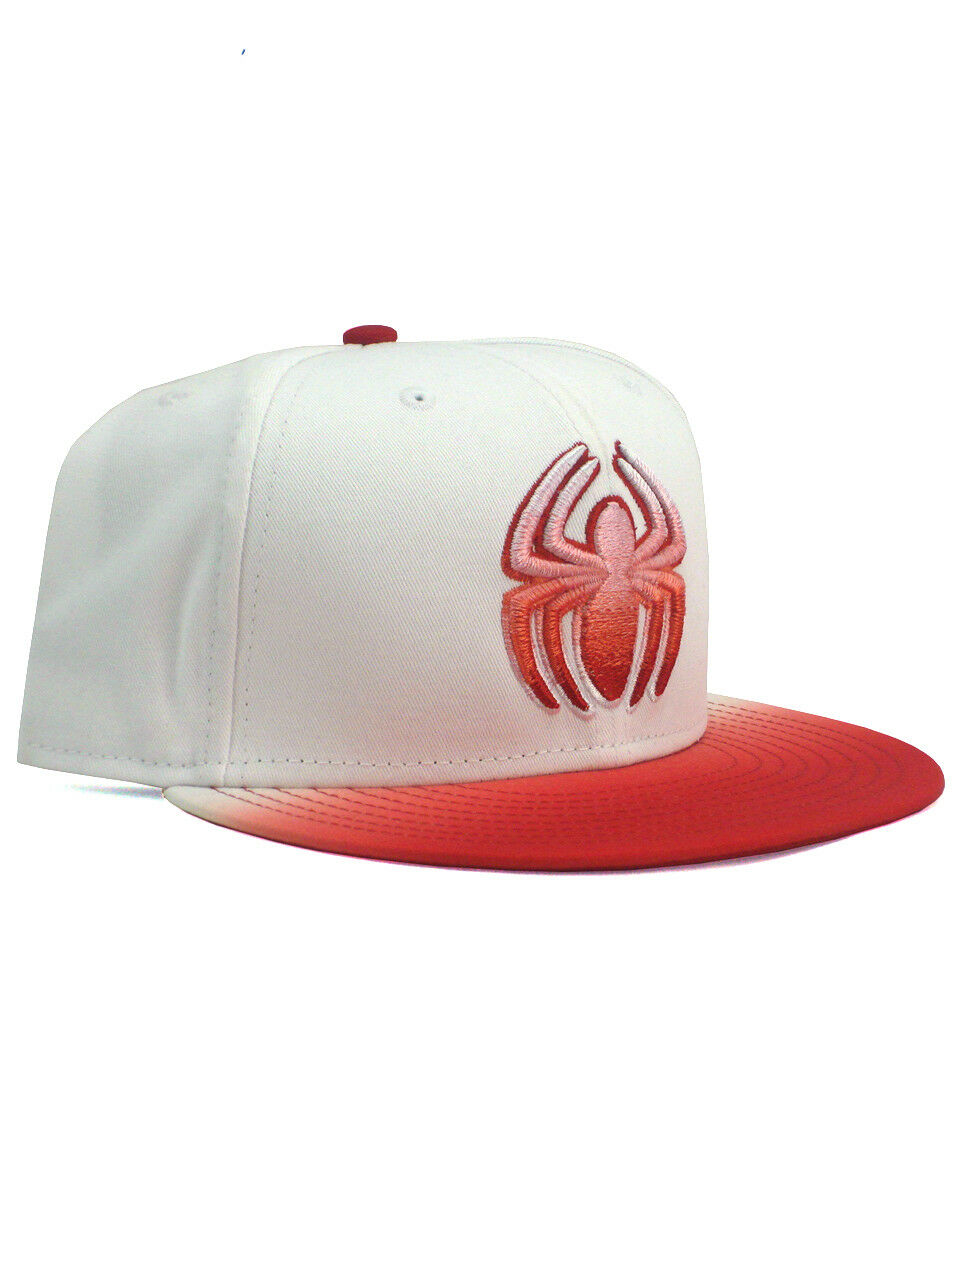 3d247 fc188  cheap new era spider man 59fifty custom fitted hat hero size 7  3 8 marvel hero 14d6bdc1fa19